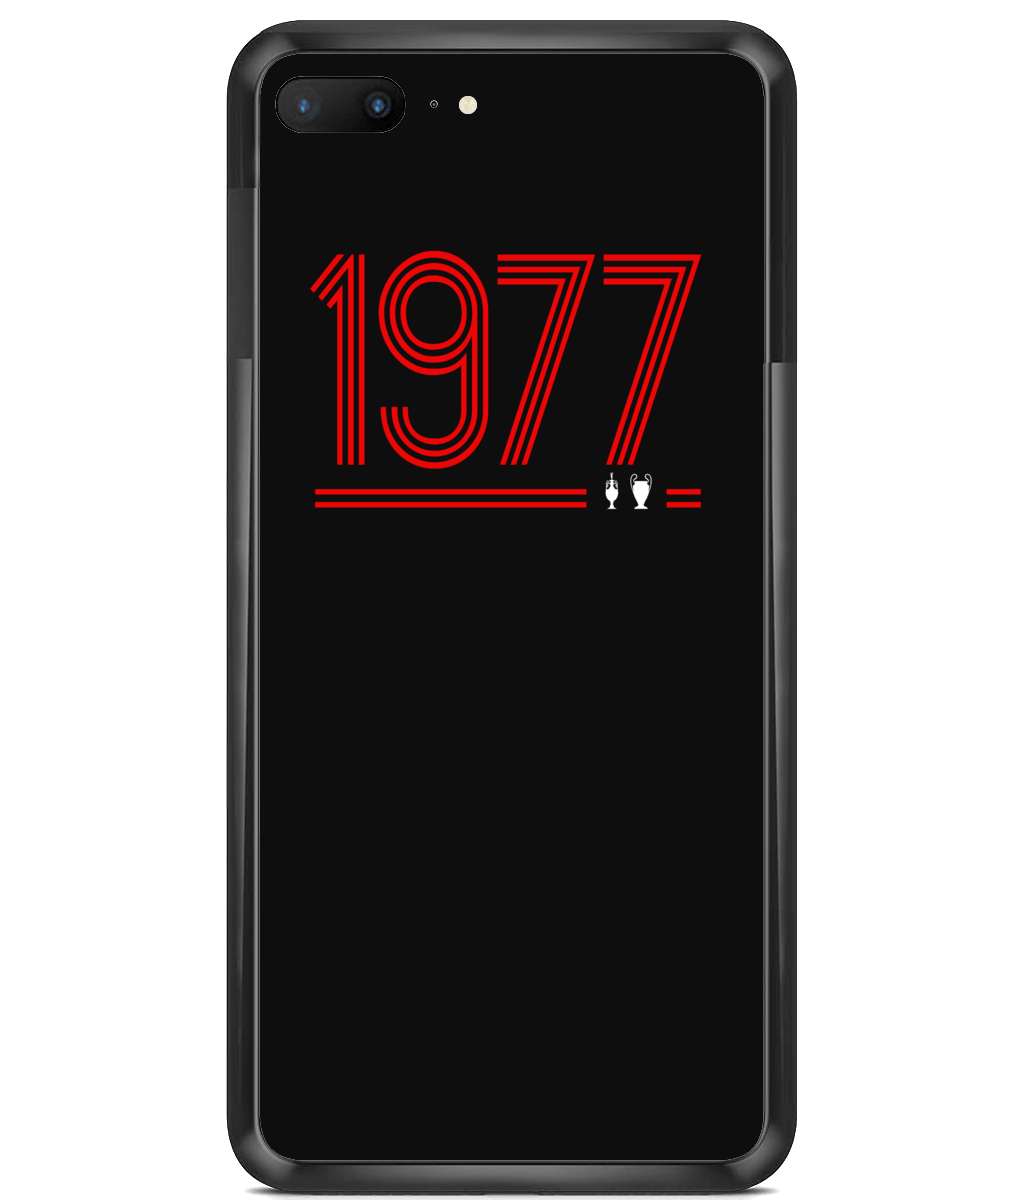 Premium Hard Phone Cases - Retro 1977